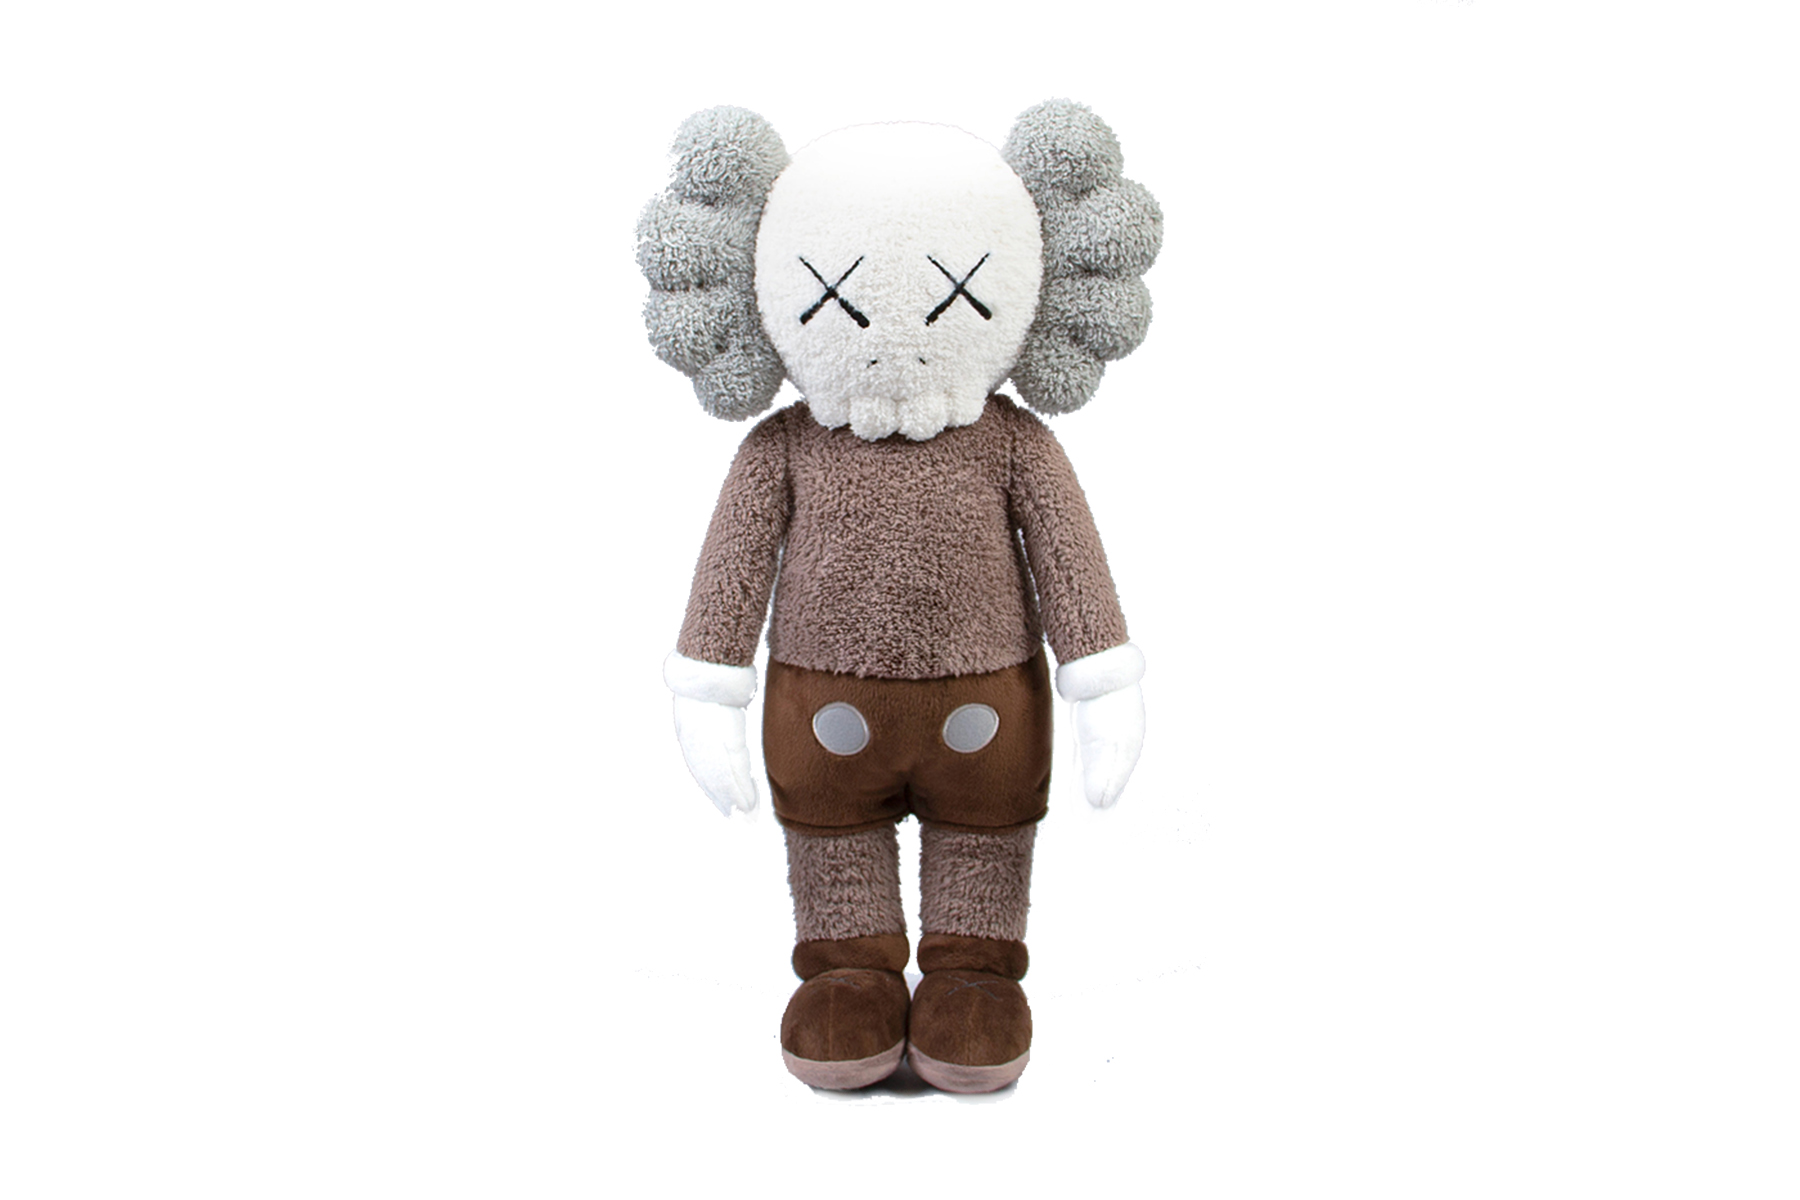 KAWS 'KAWS:HOLIDAY' Plush Set